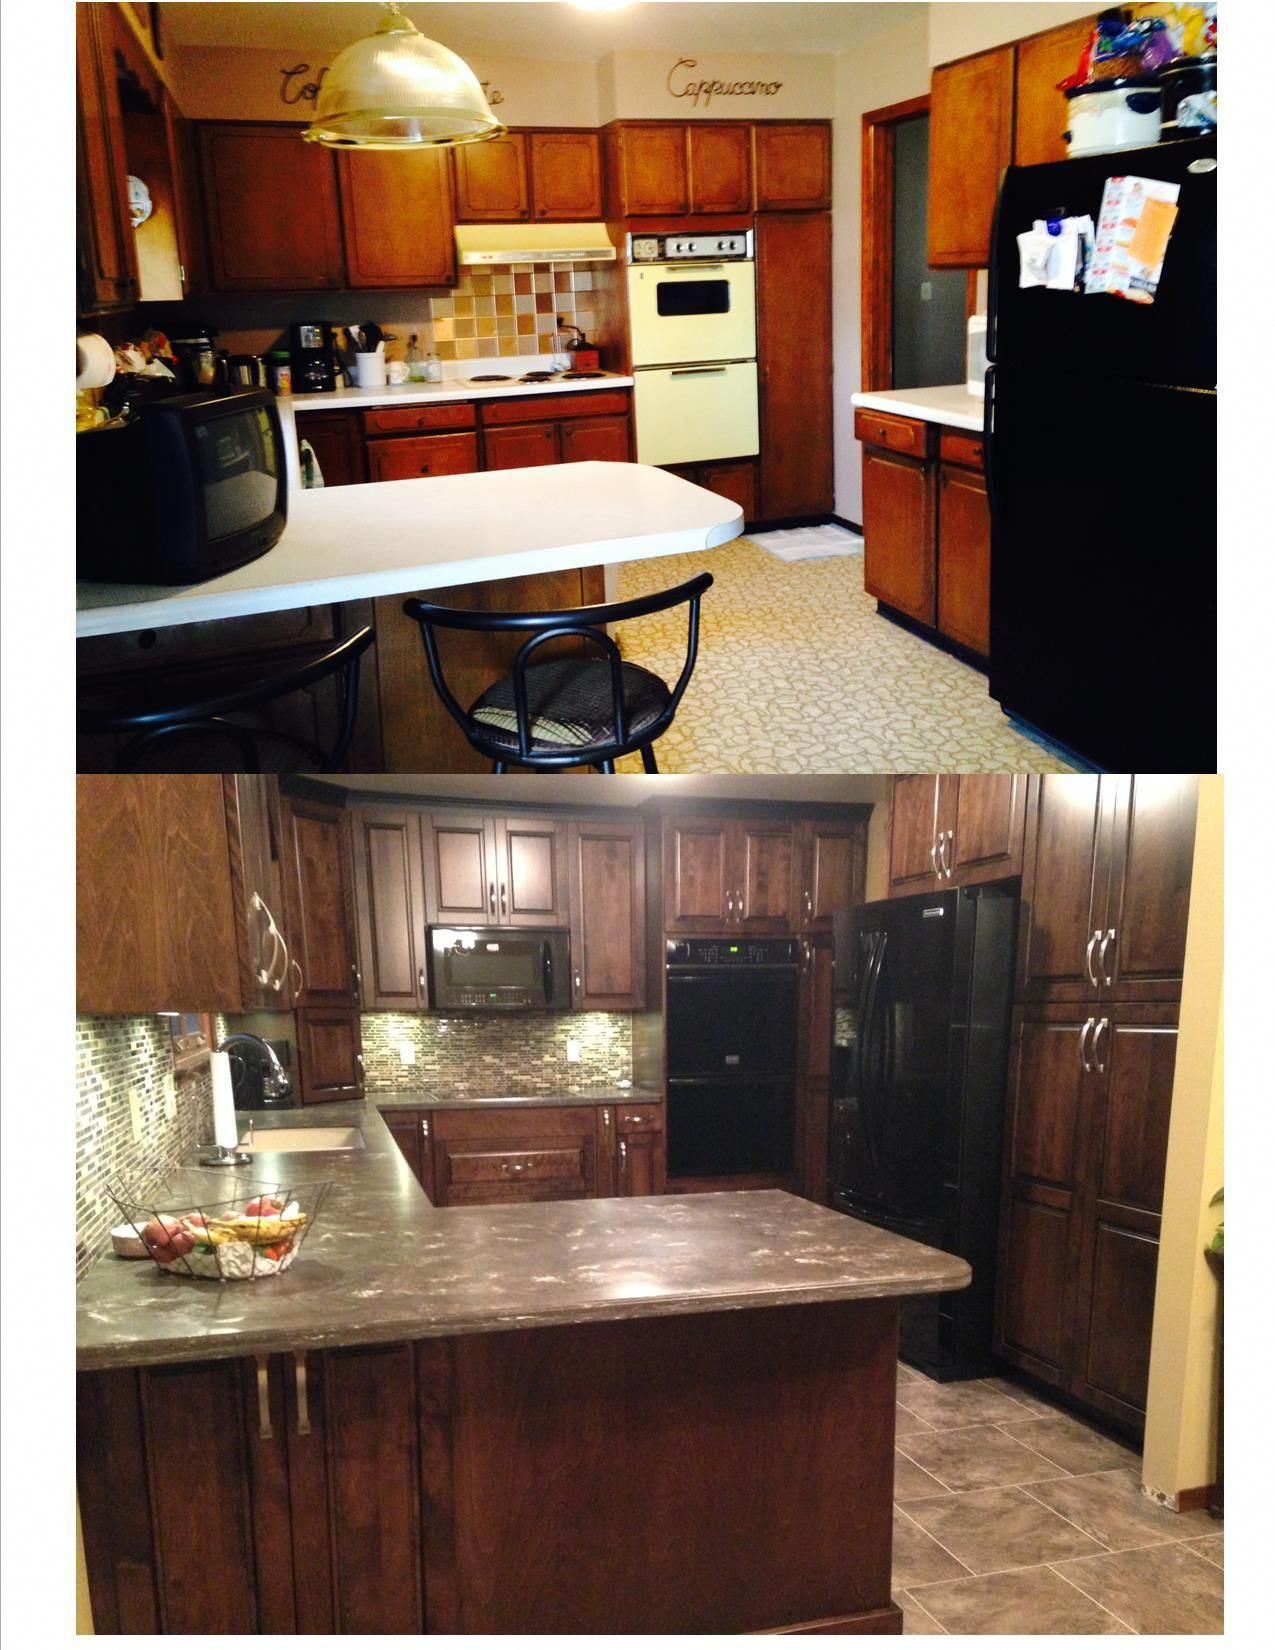 1960s Kitchen Remodel Before After: My Kitchen Remodel Before And After Pictures